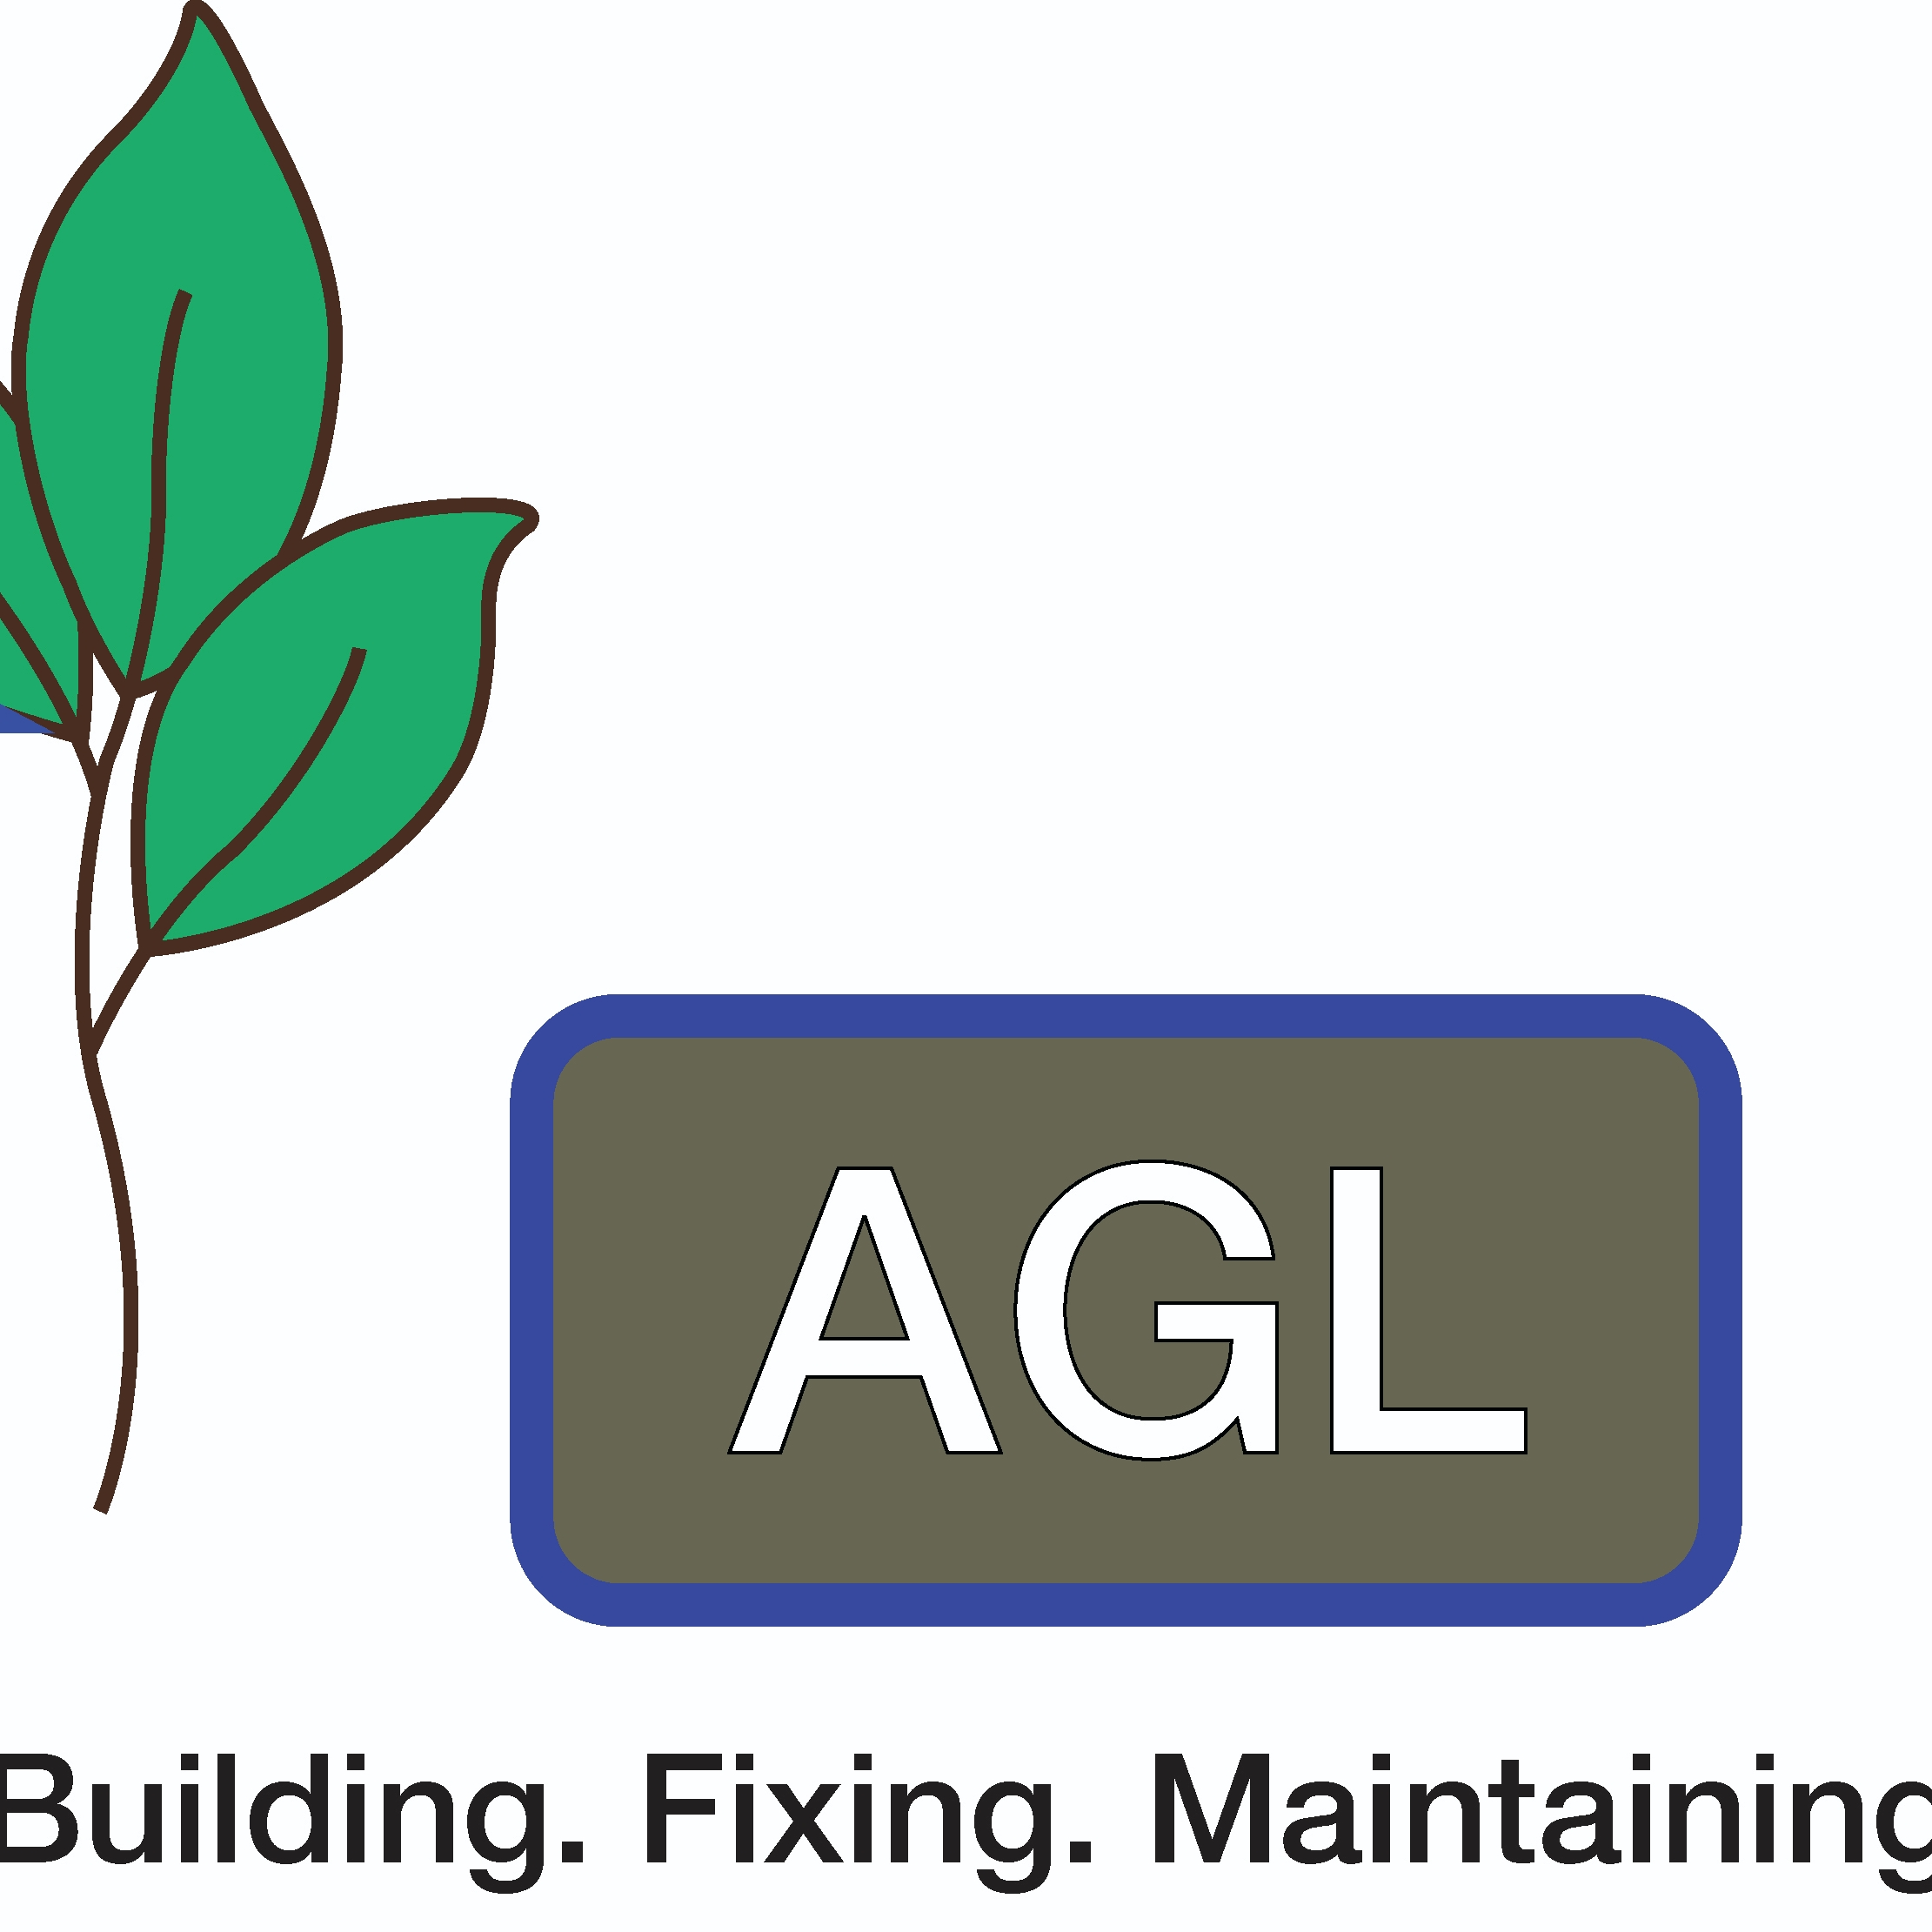 A G L / Building Fixing Maintaining